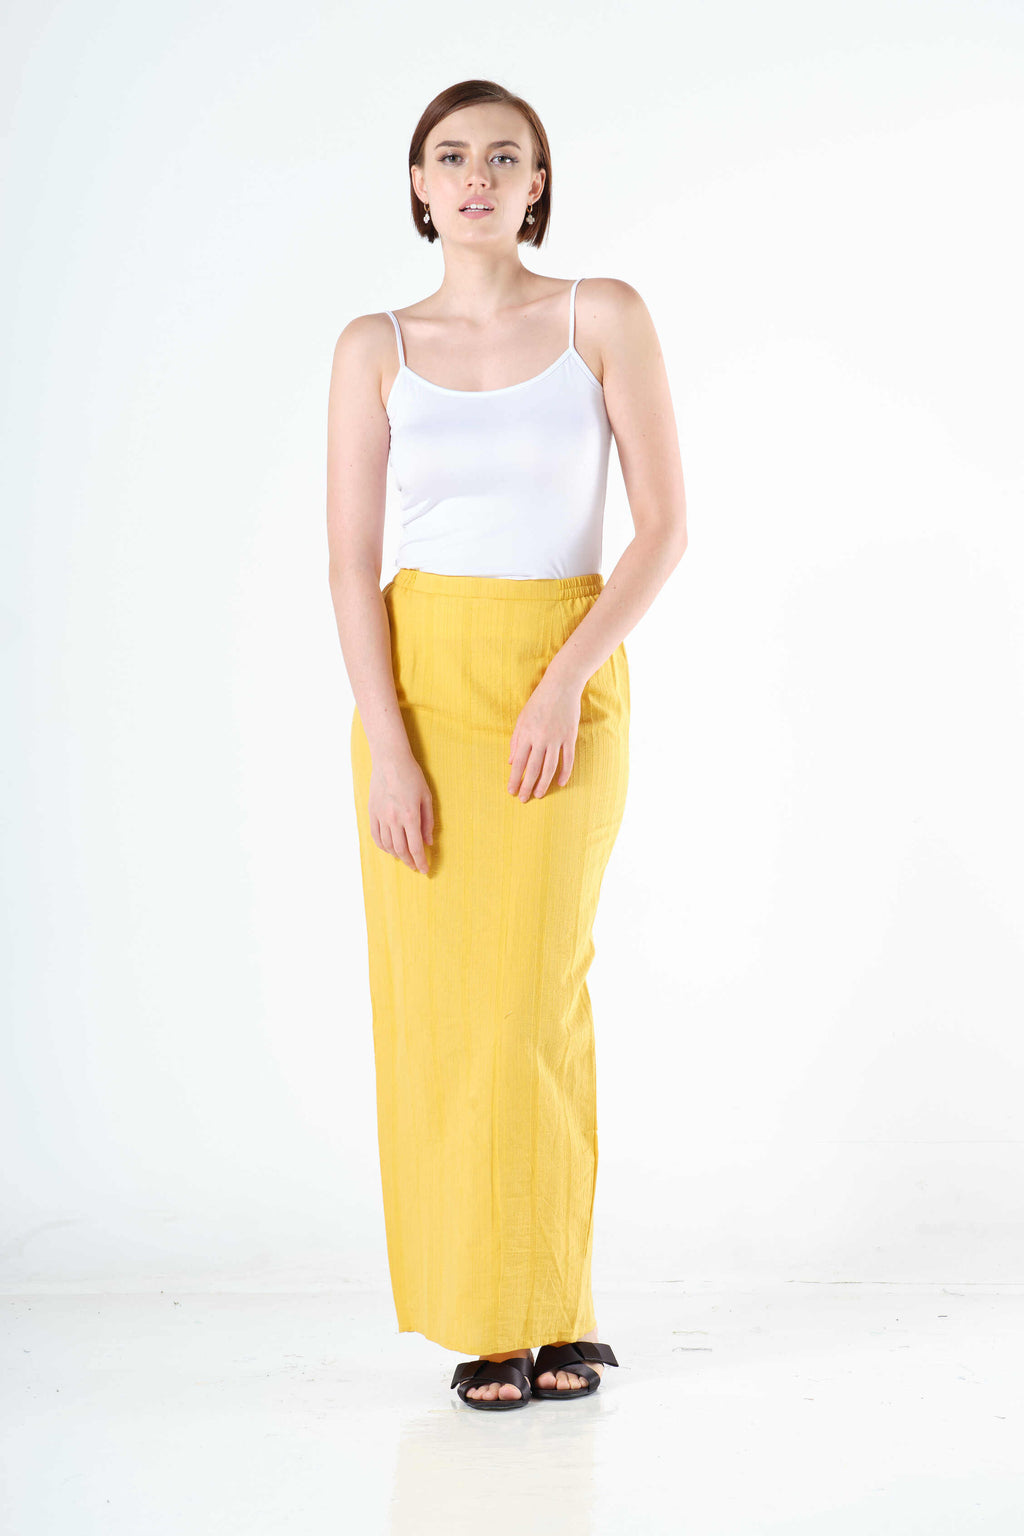 Syairah Sarung in Yellow